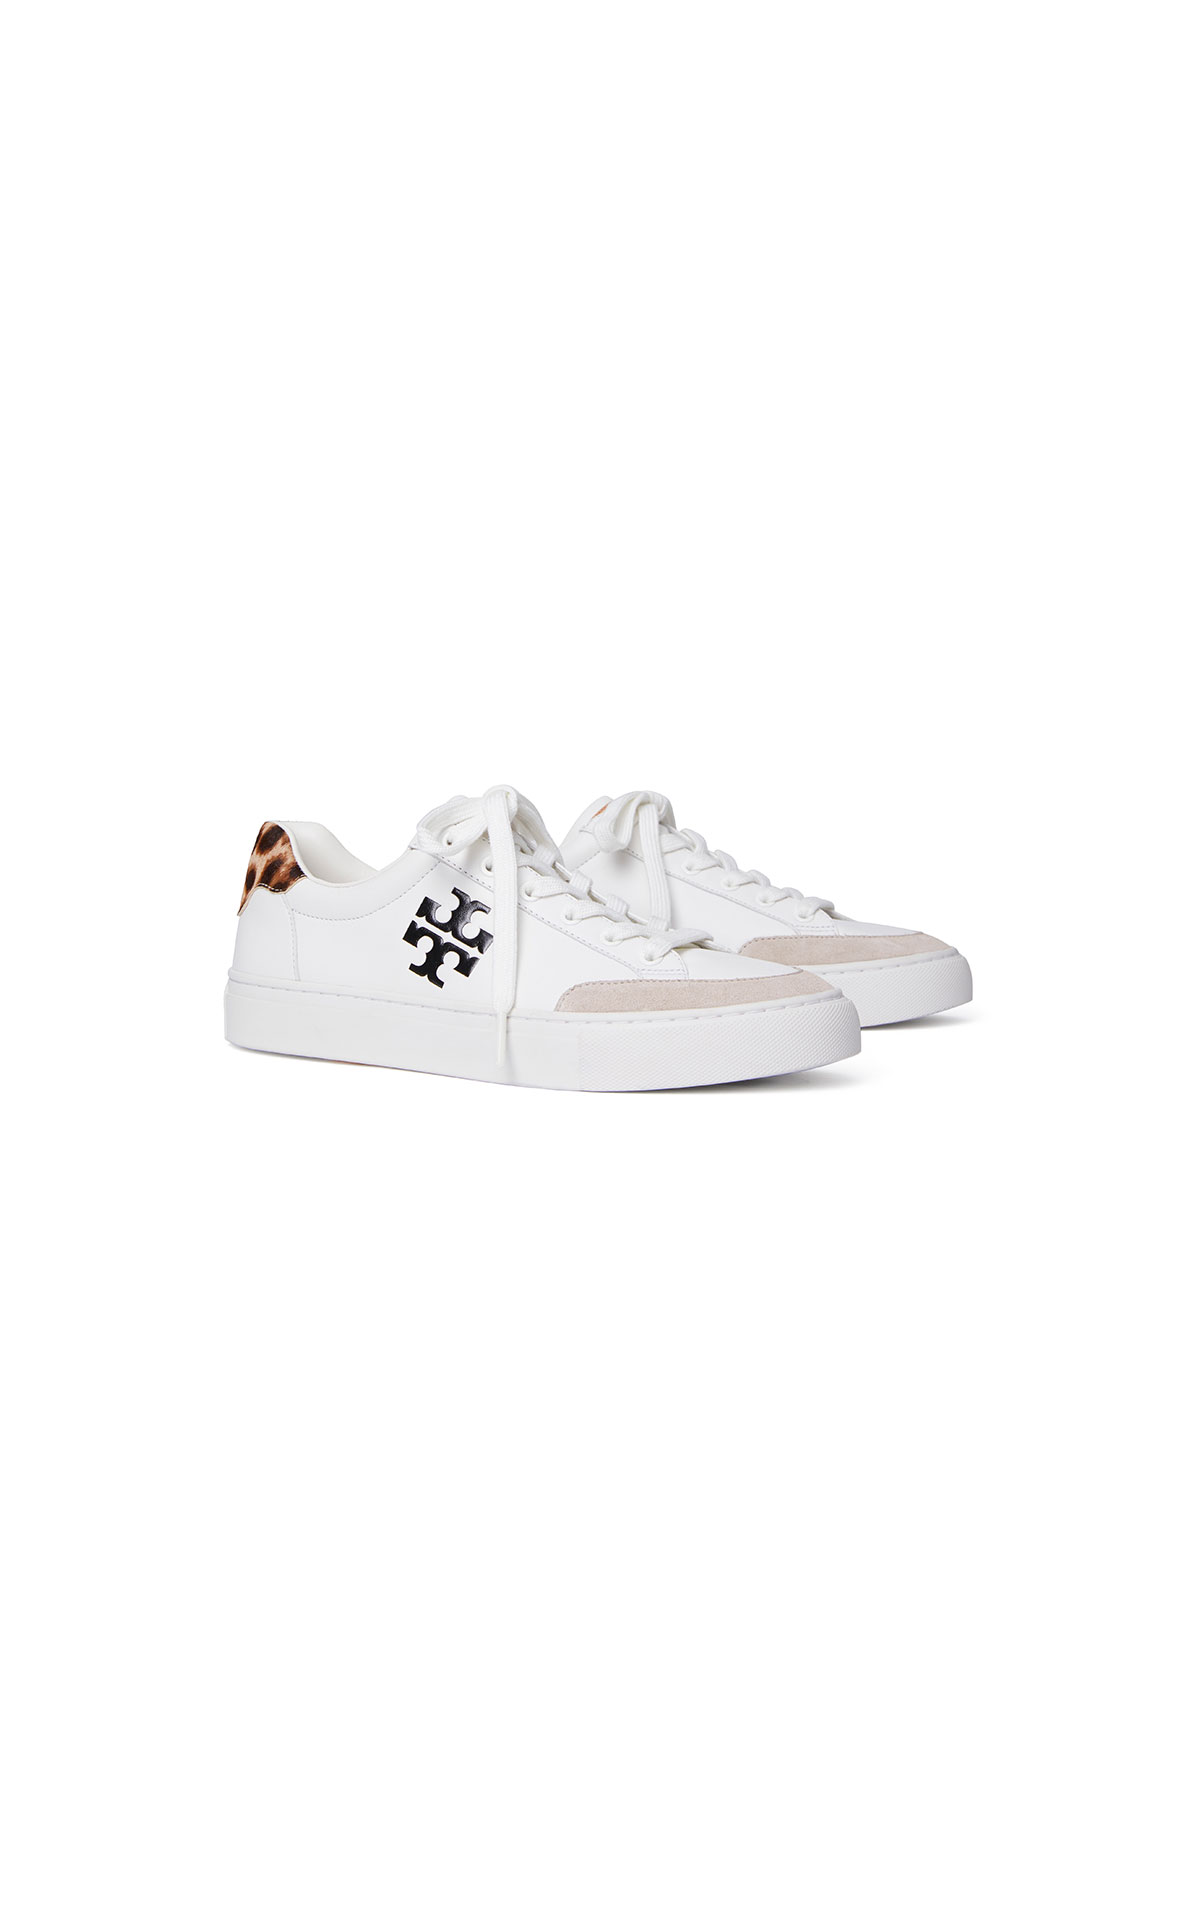 Tory Burch Andrea color block court sneaker in snow white at The Bicester Village Shopping Collection